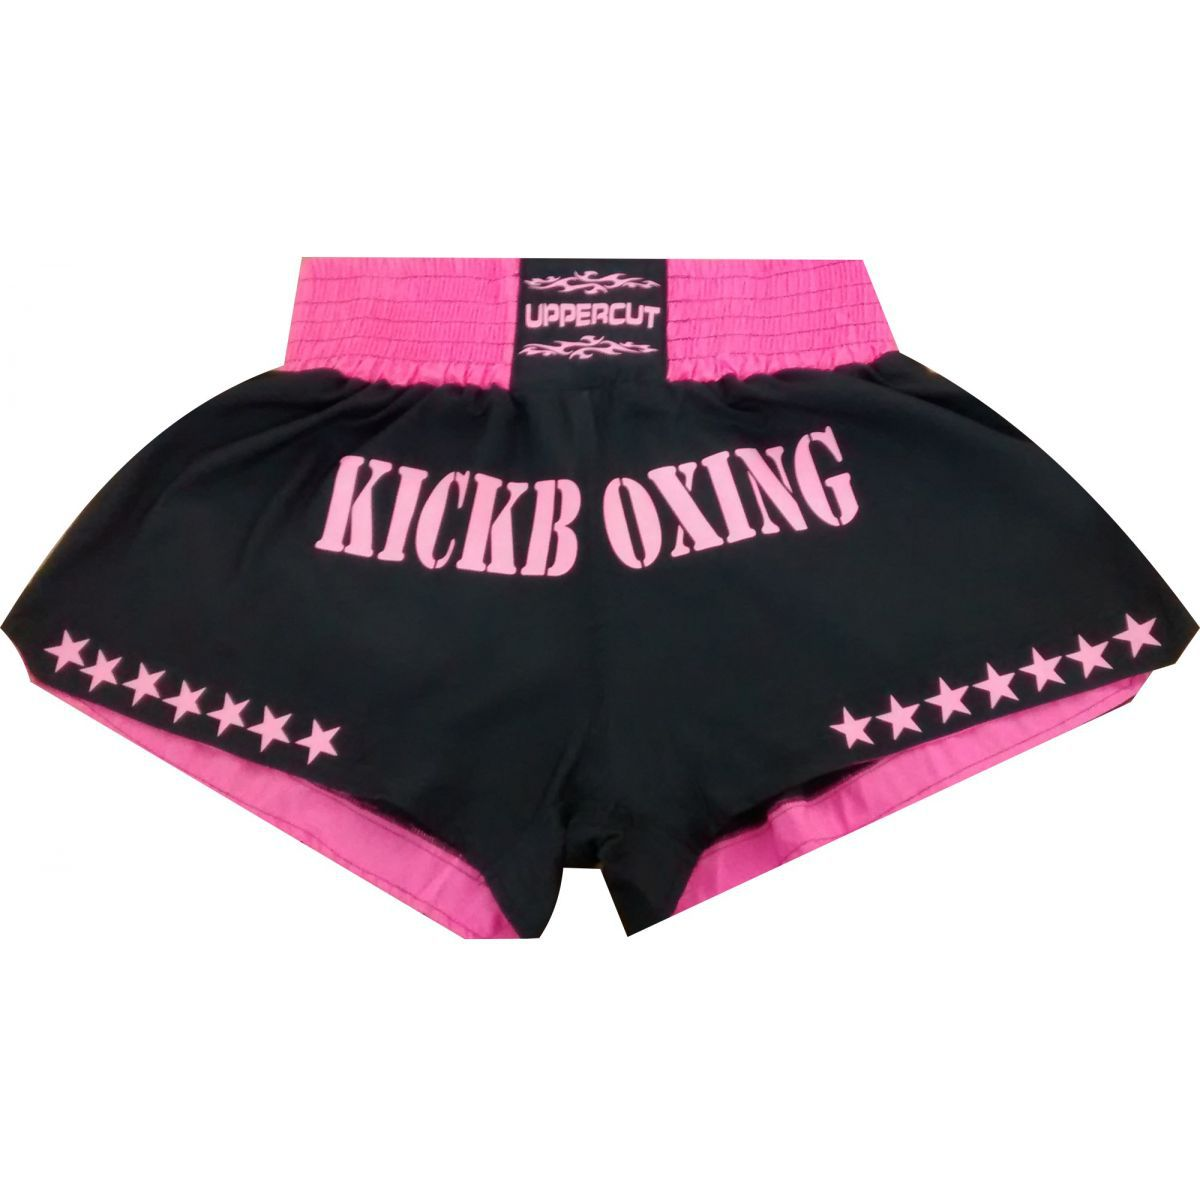 Calção Short Kickboxing  - GP - Preto/Rosa- Uppercut -  - Loja do Competidor